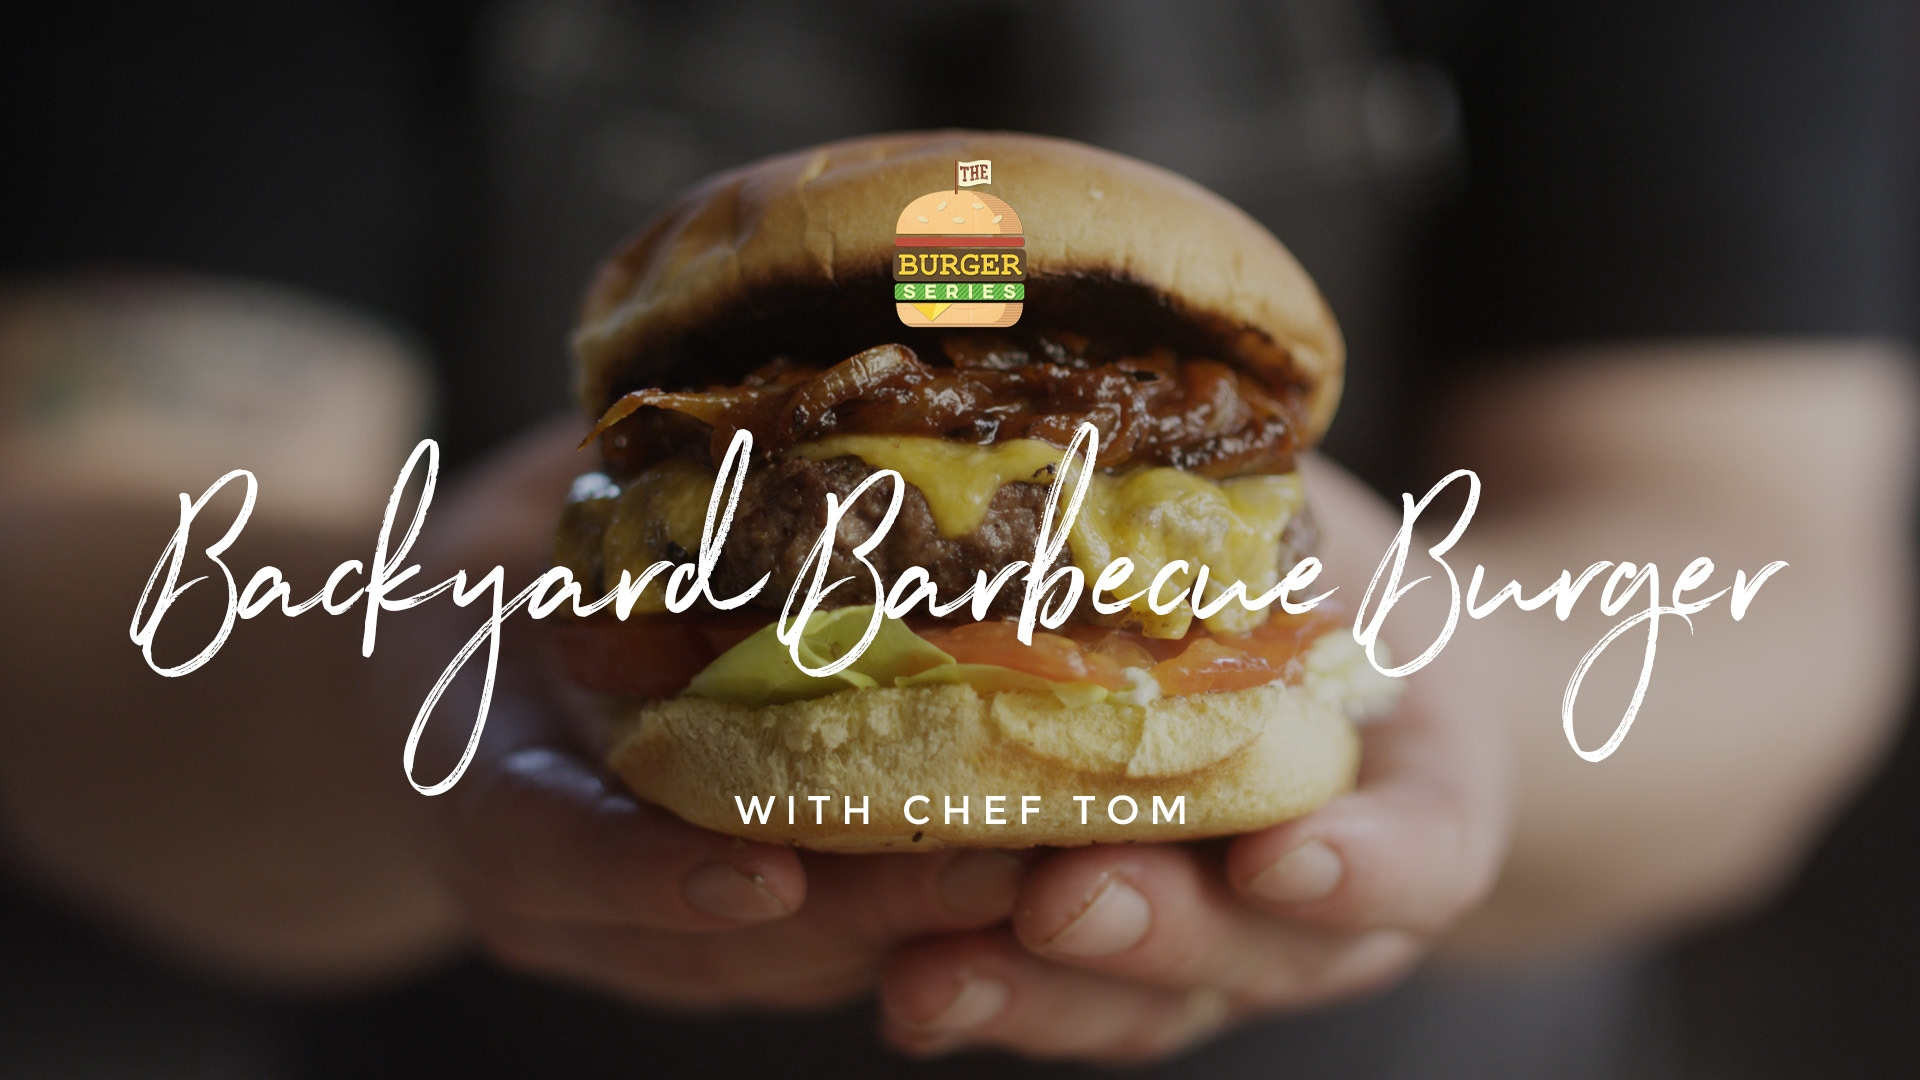 How to make Backyard Barbecue Burgers